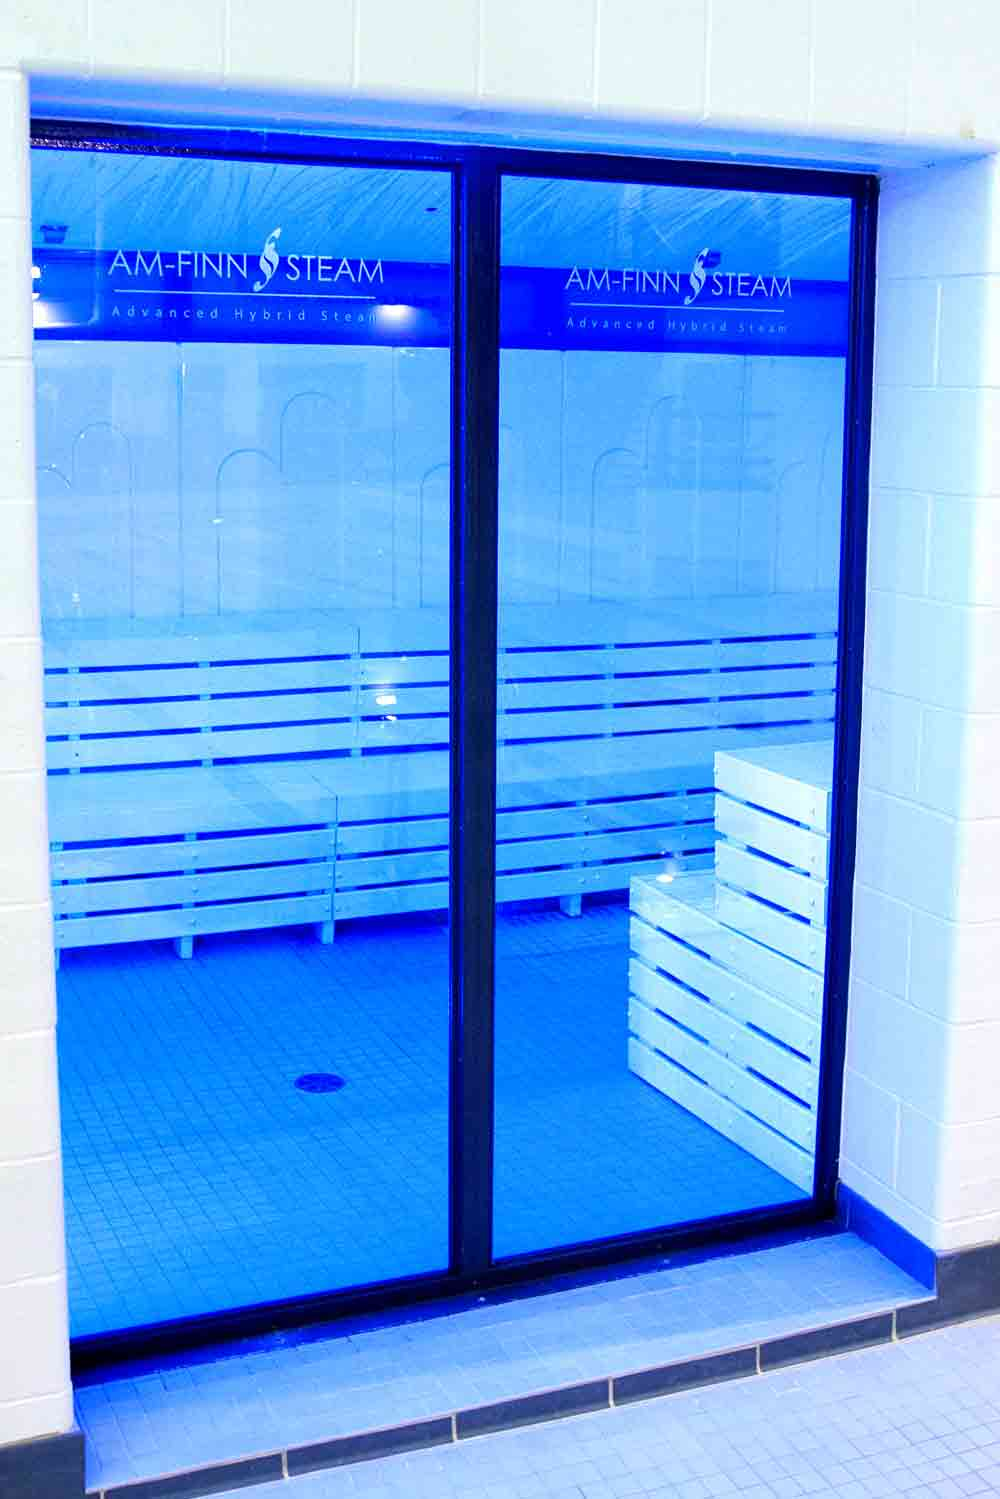 Steam-room-intallation-rec-center.jpg